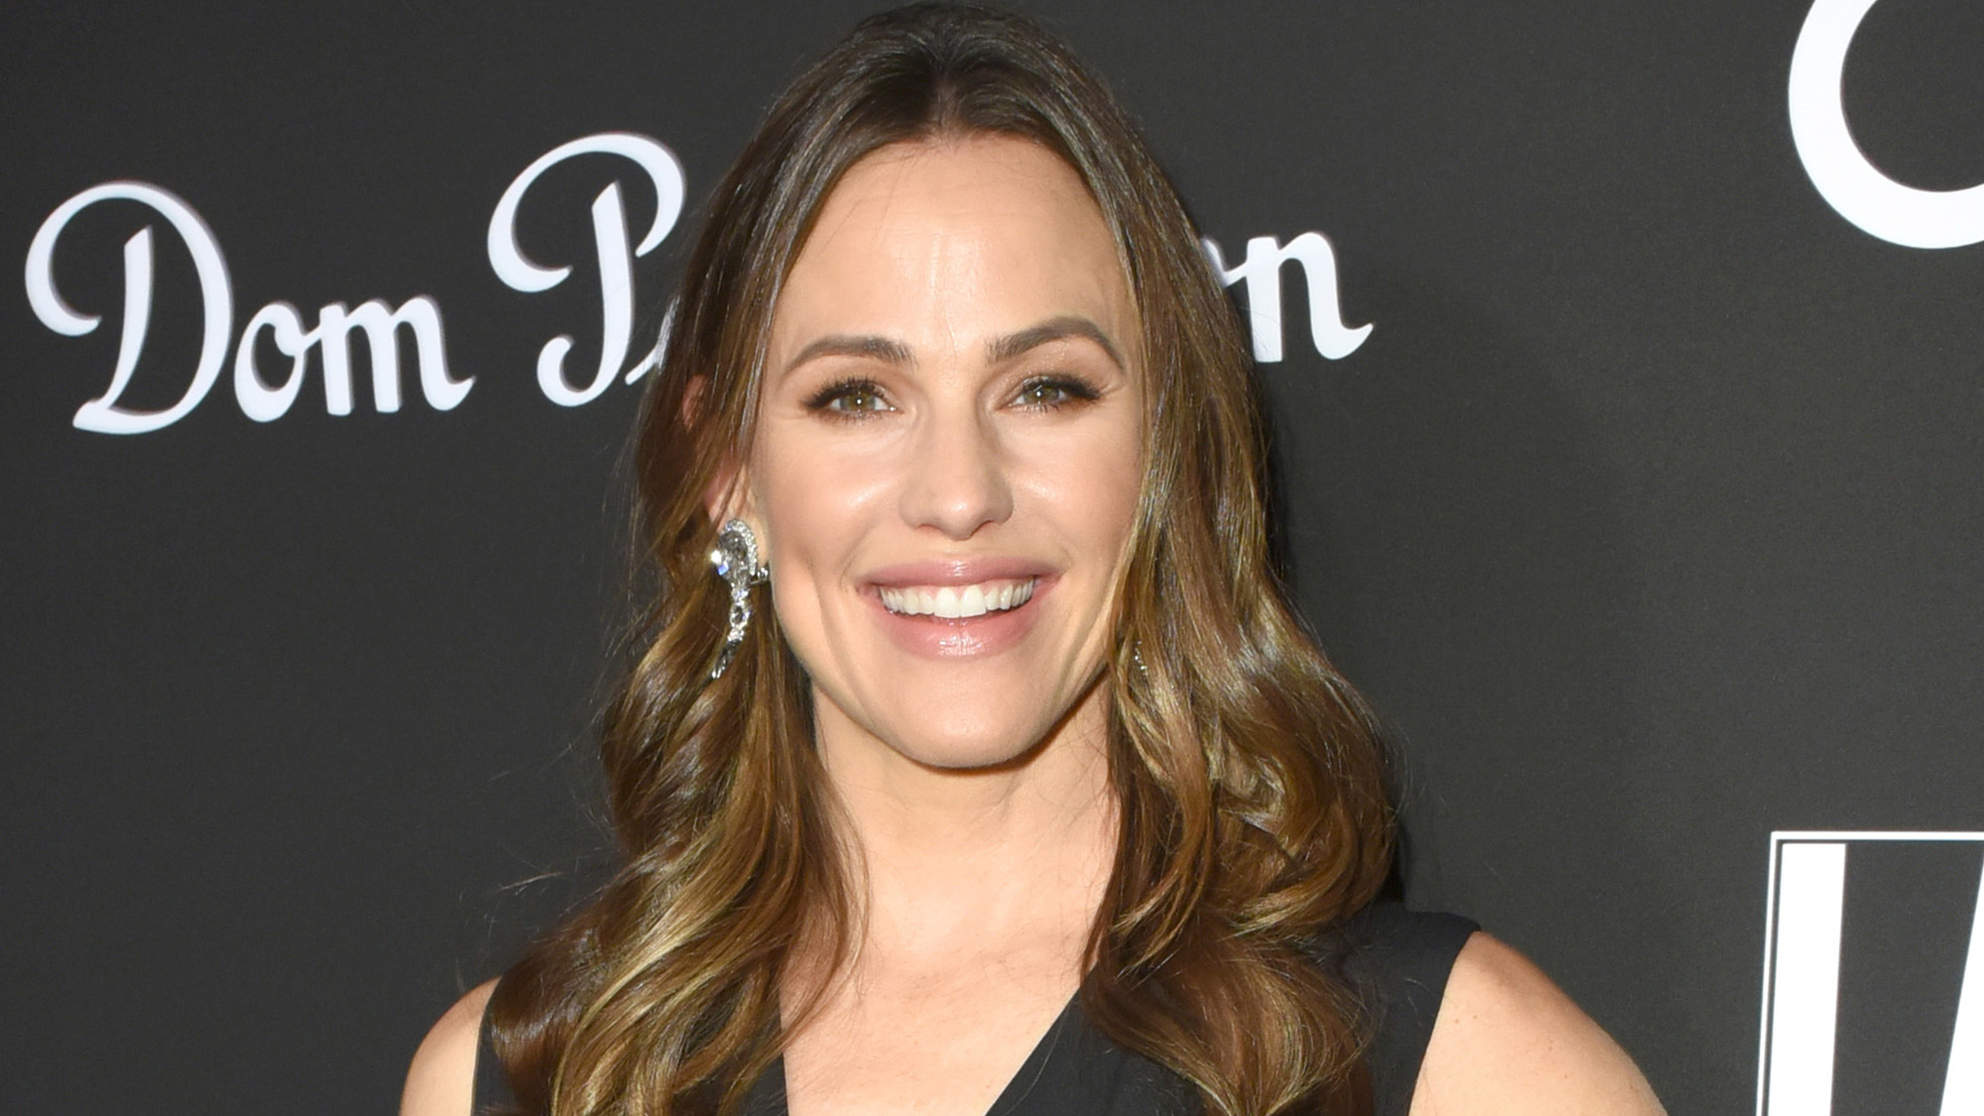 Jennifer Garner's Go-To Retinol Oil Is the Anti-Aging Treatment You've Been Looking For